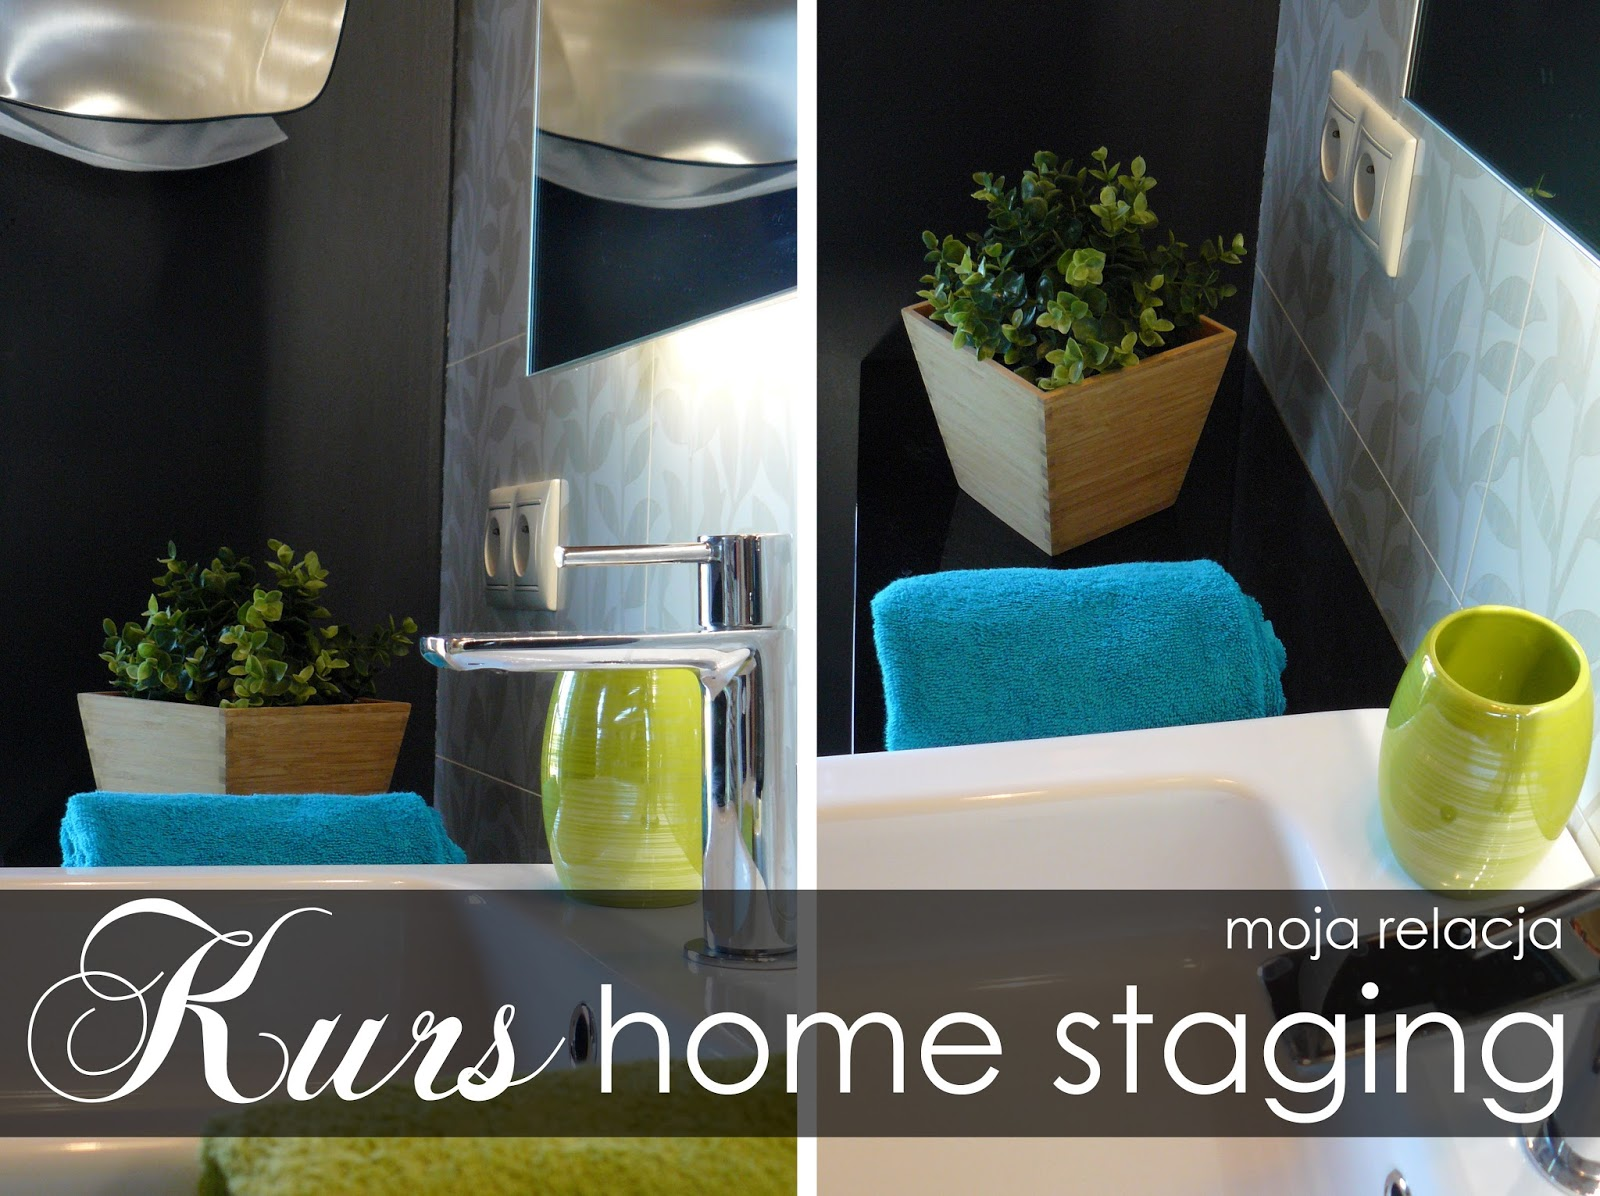 http://projektantkamaplan.blogspot.com/2017/01/kurs-home-staging-moja-relacja-educoncept-stageitup.html#more